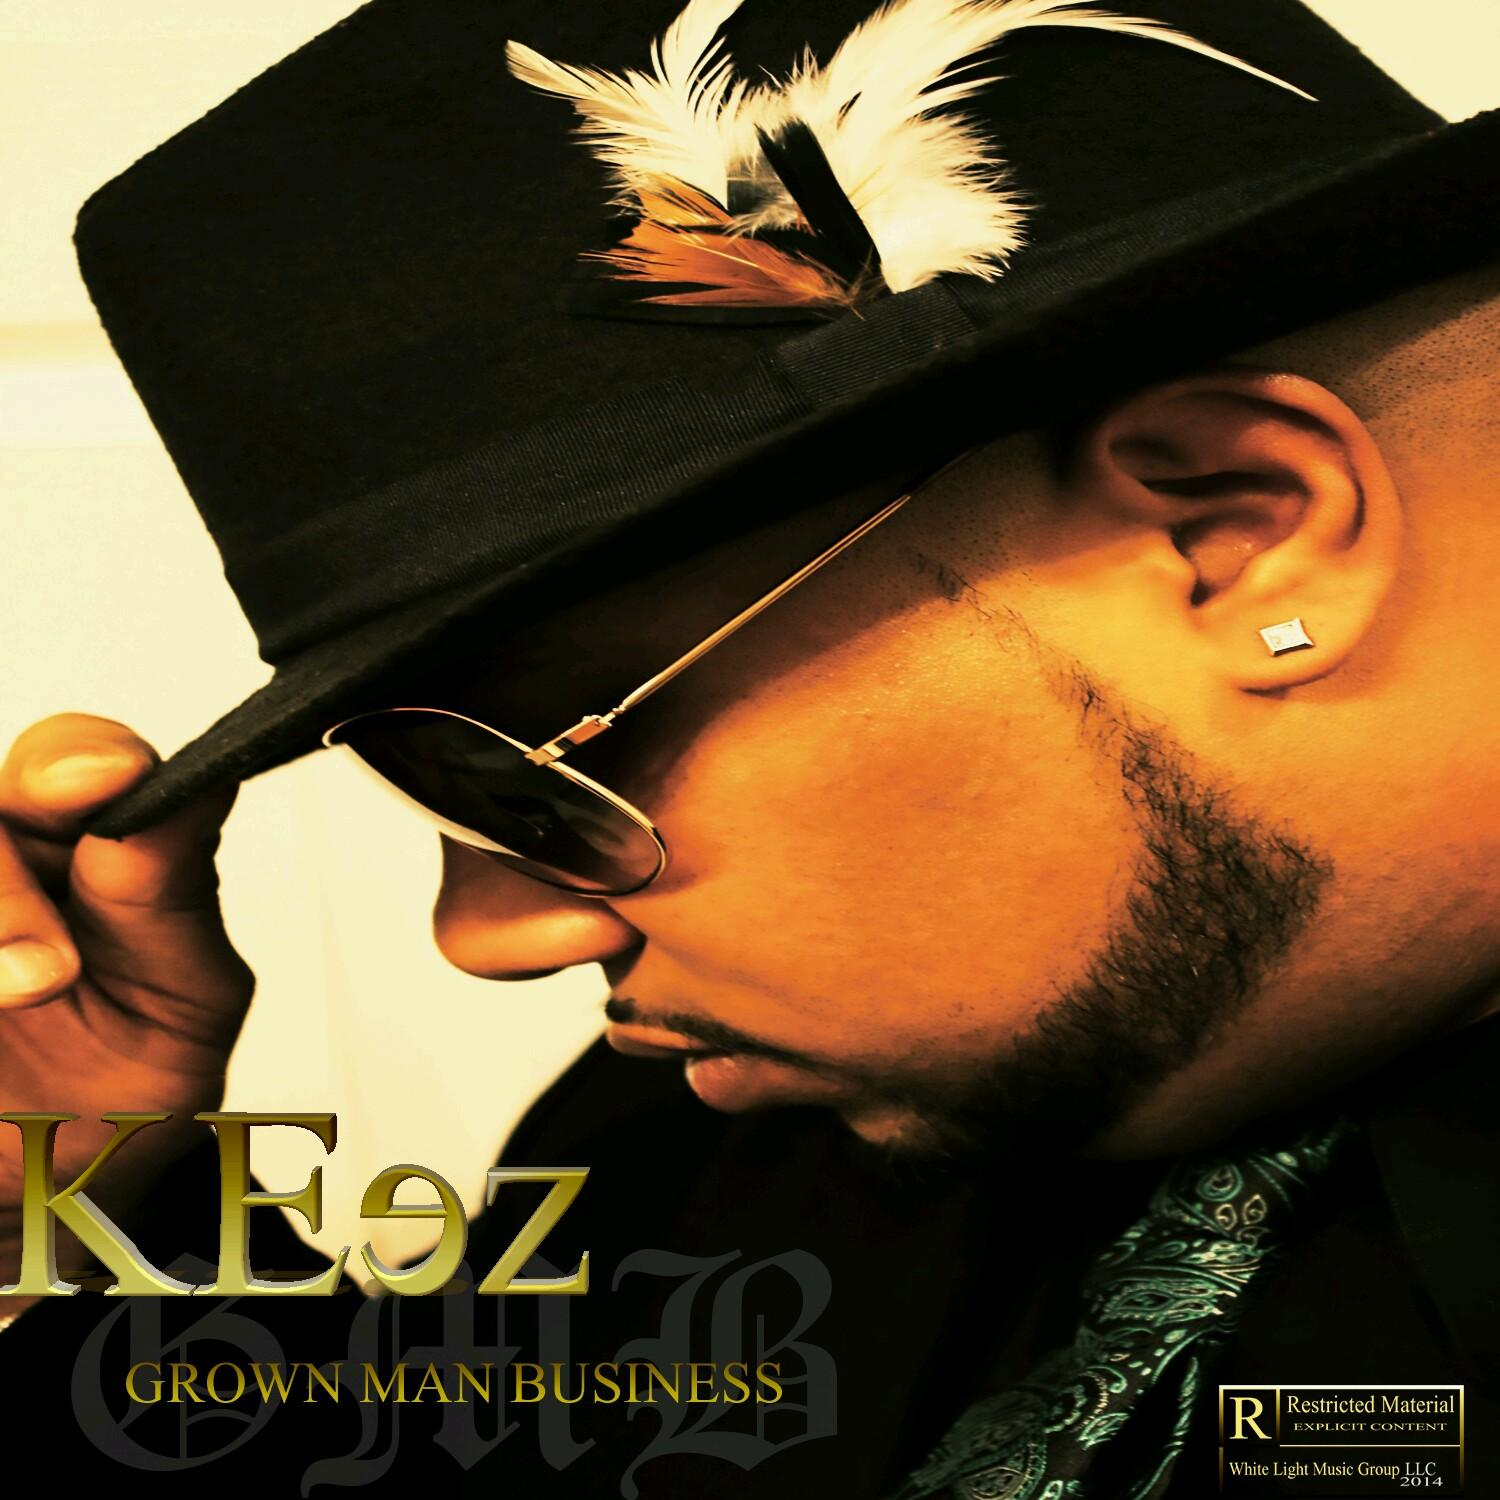 Grown Man Business, the 2014 album by hip-hop artist KEez